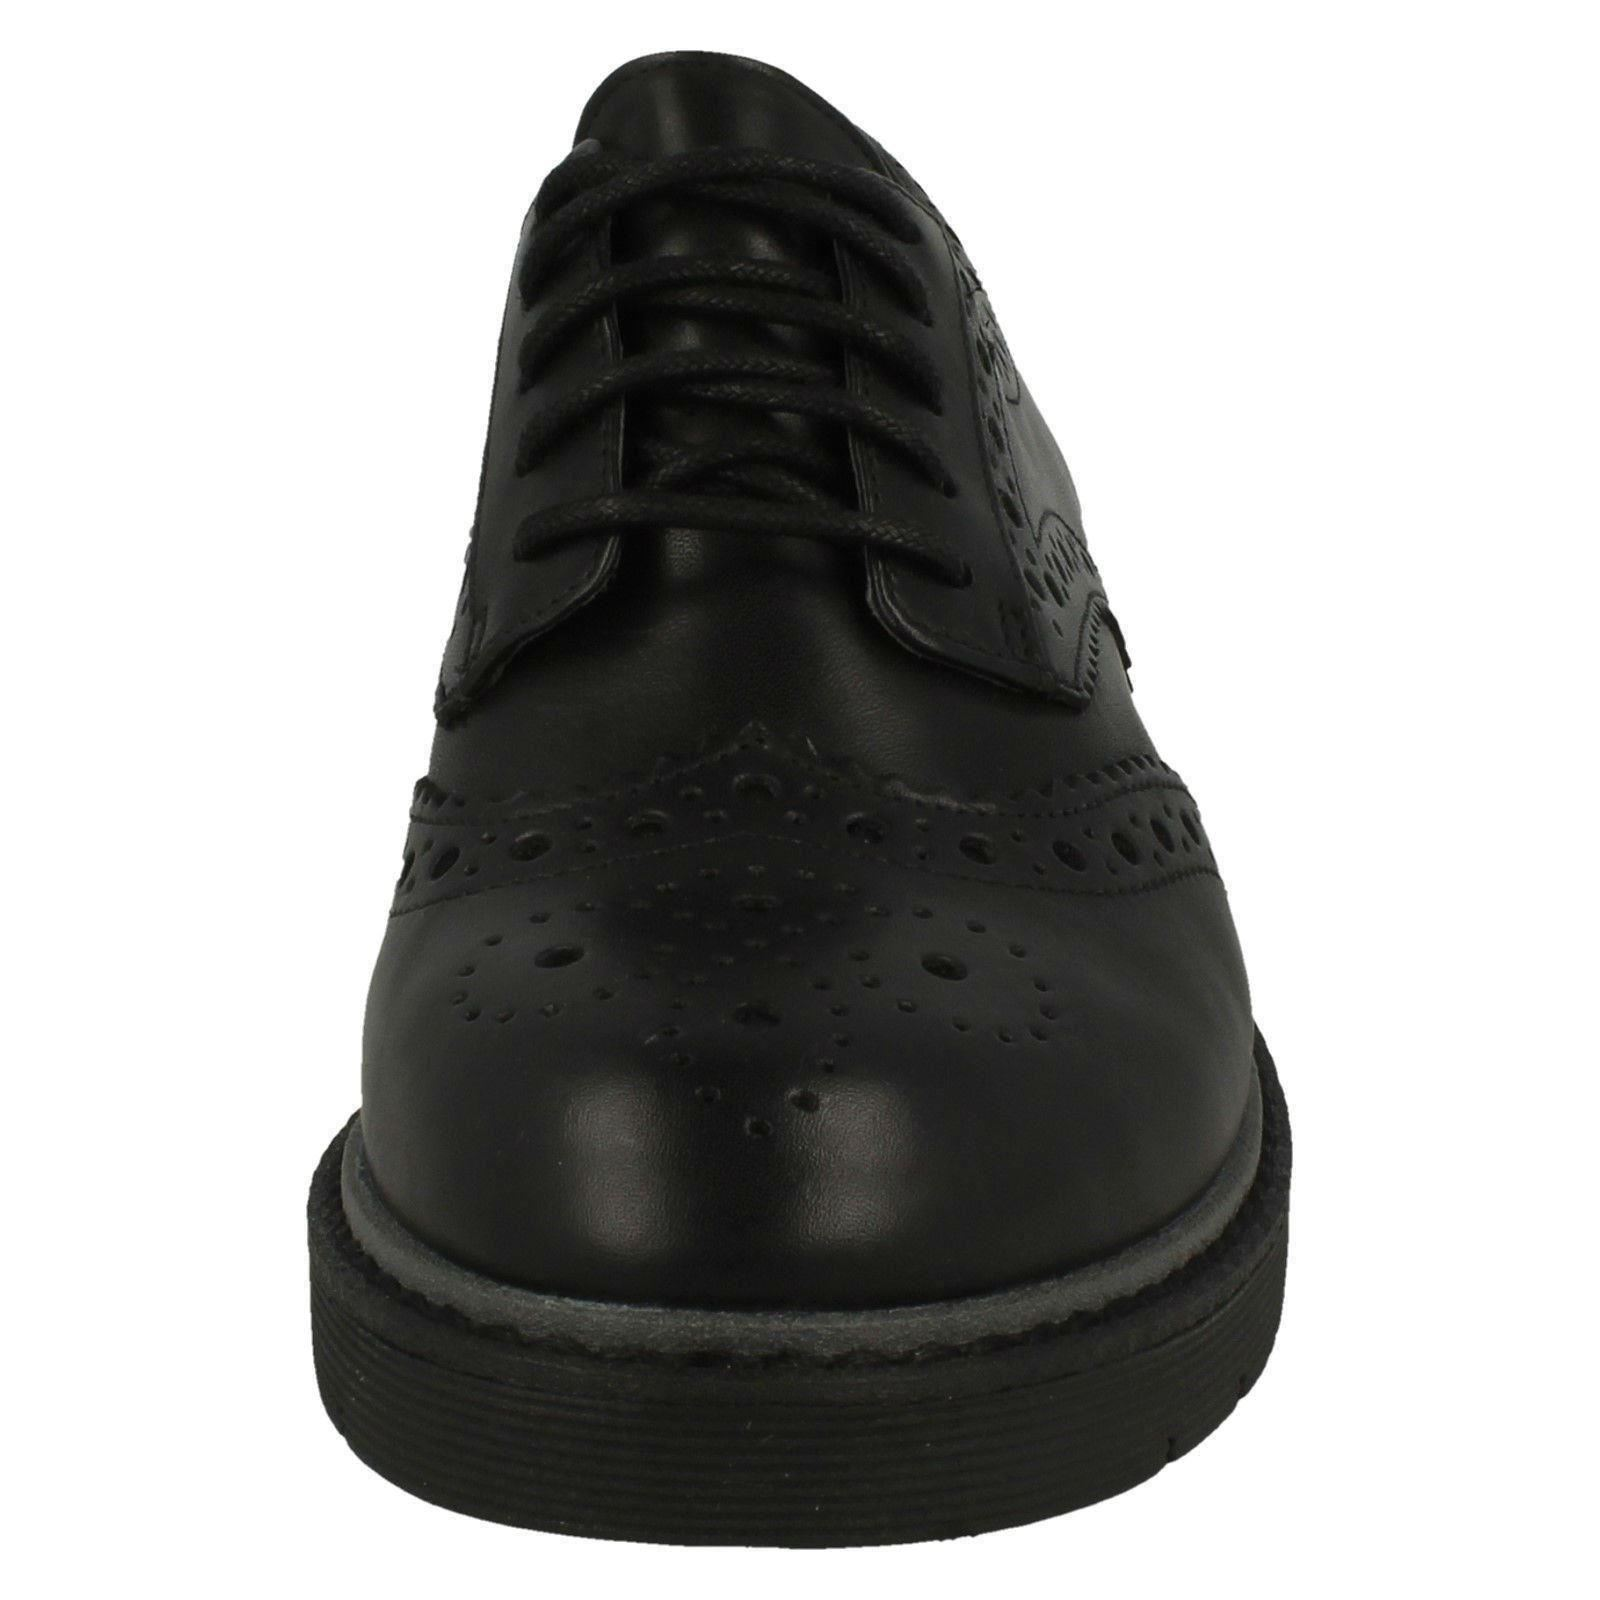 Ladies Clarks Lace Up Casual Shoes Alexa Darcy